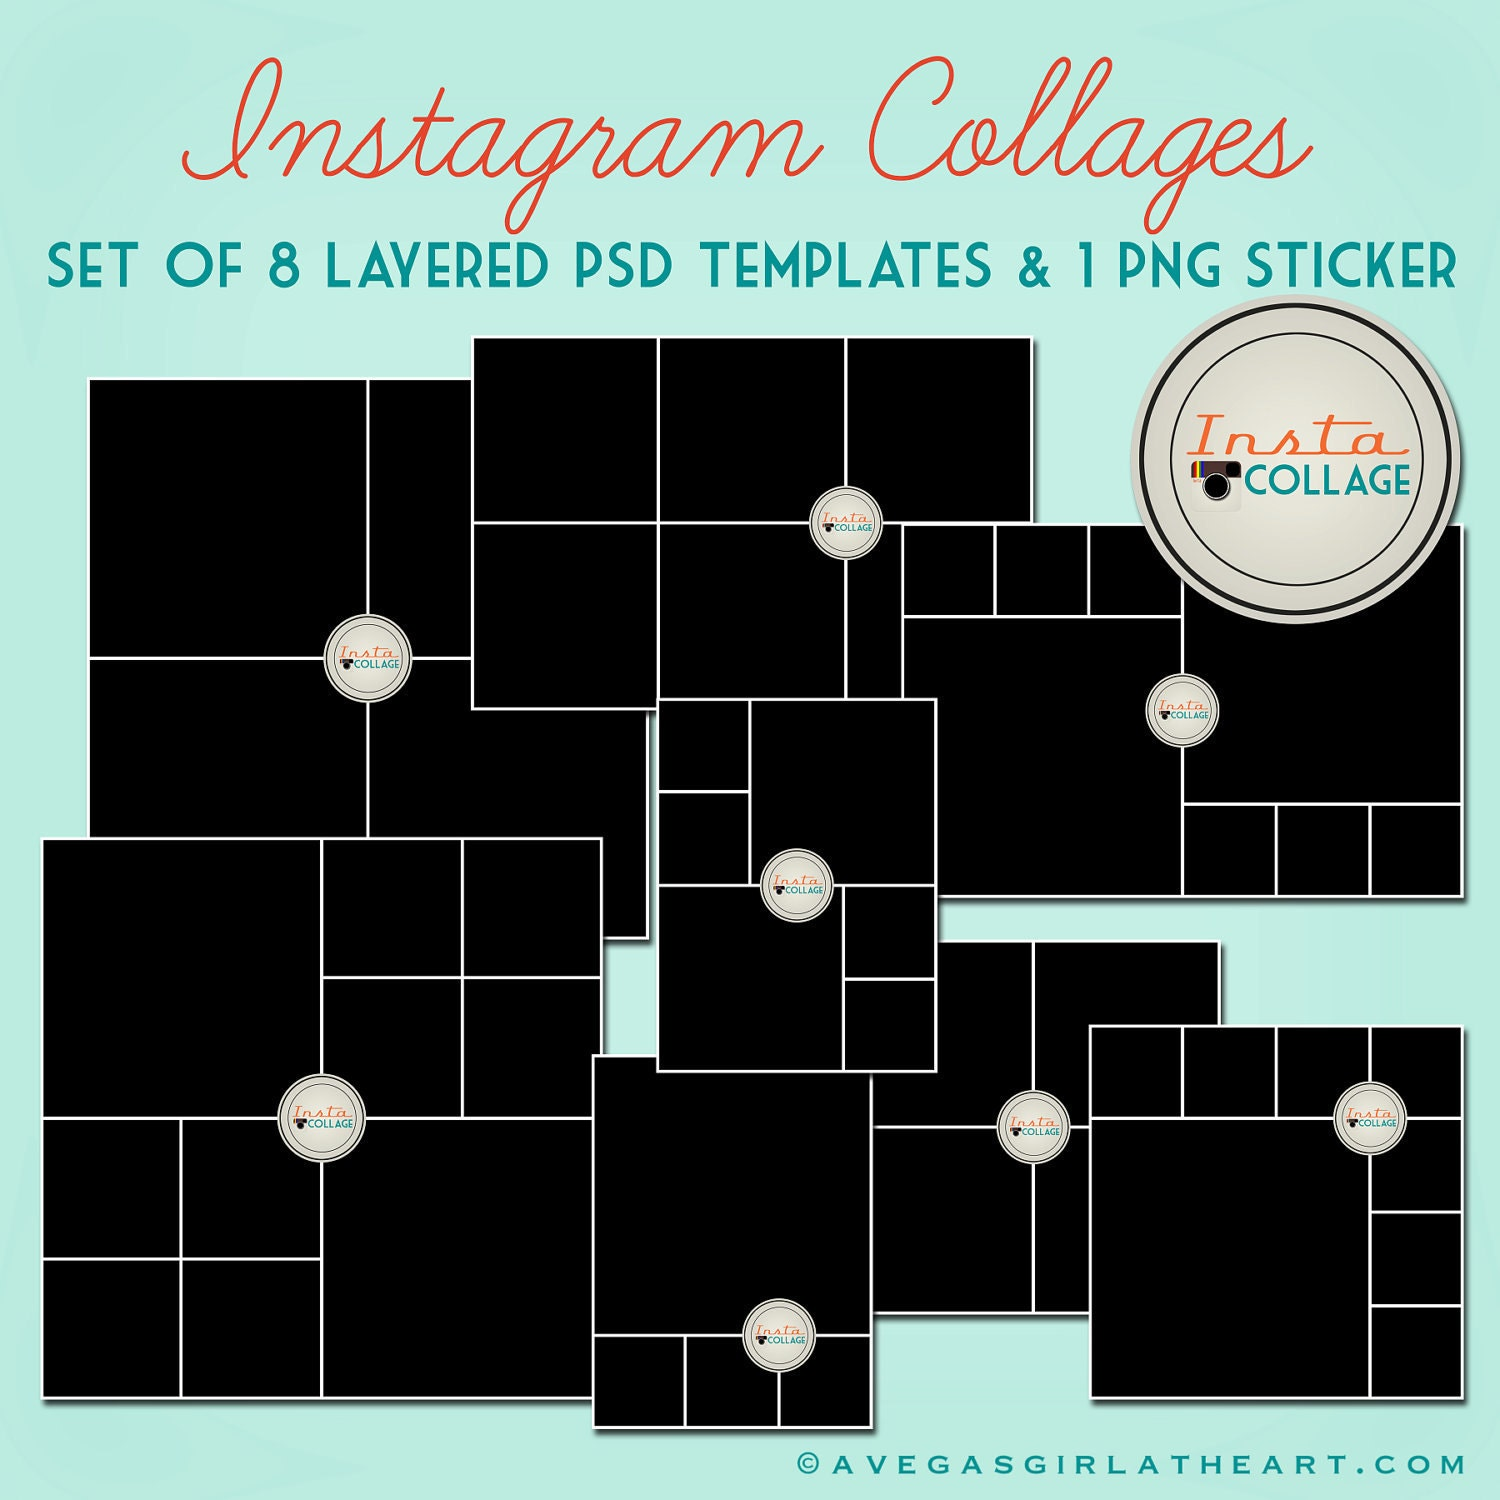 Instagram Layered PSD Collage Templates - 3x4, 4x4, 4x6, and 6x6